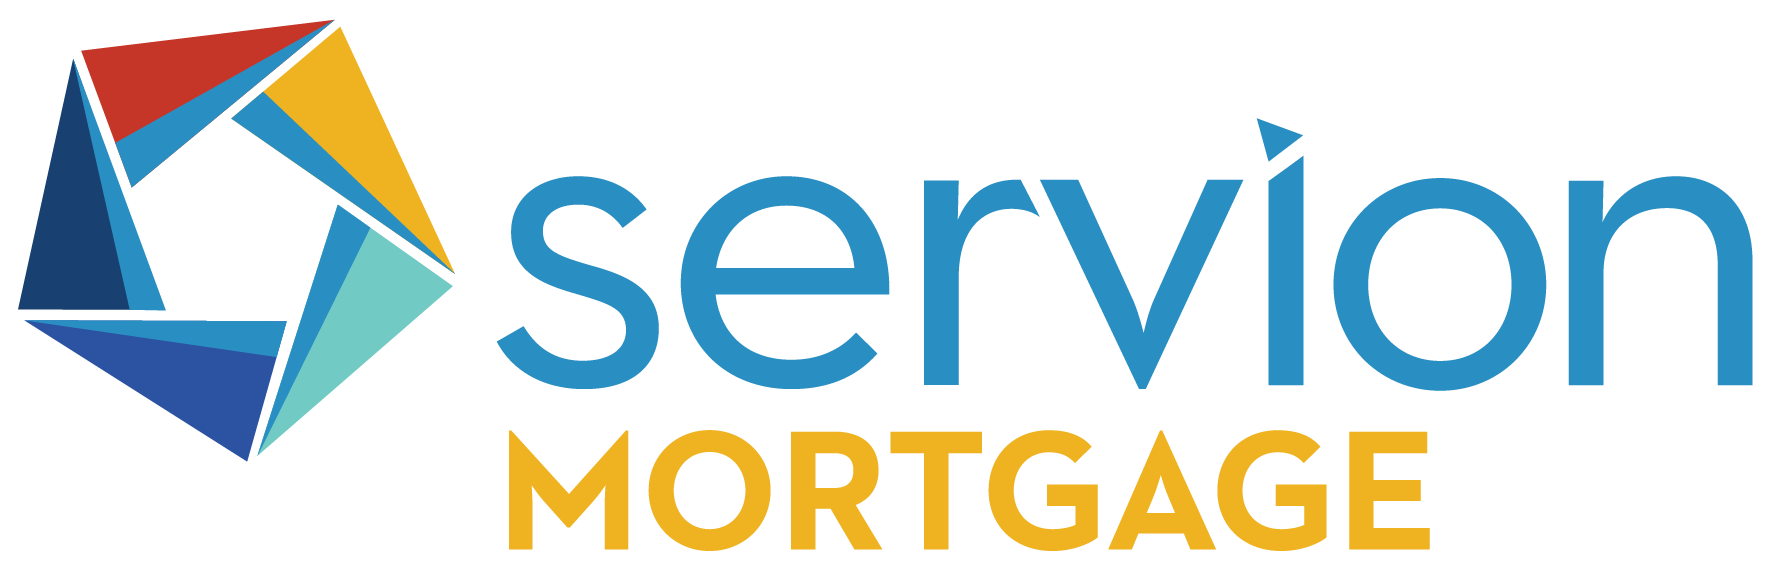 servion mortgage partner